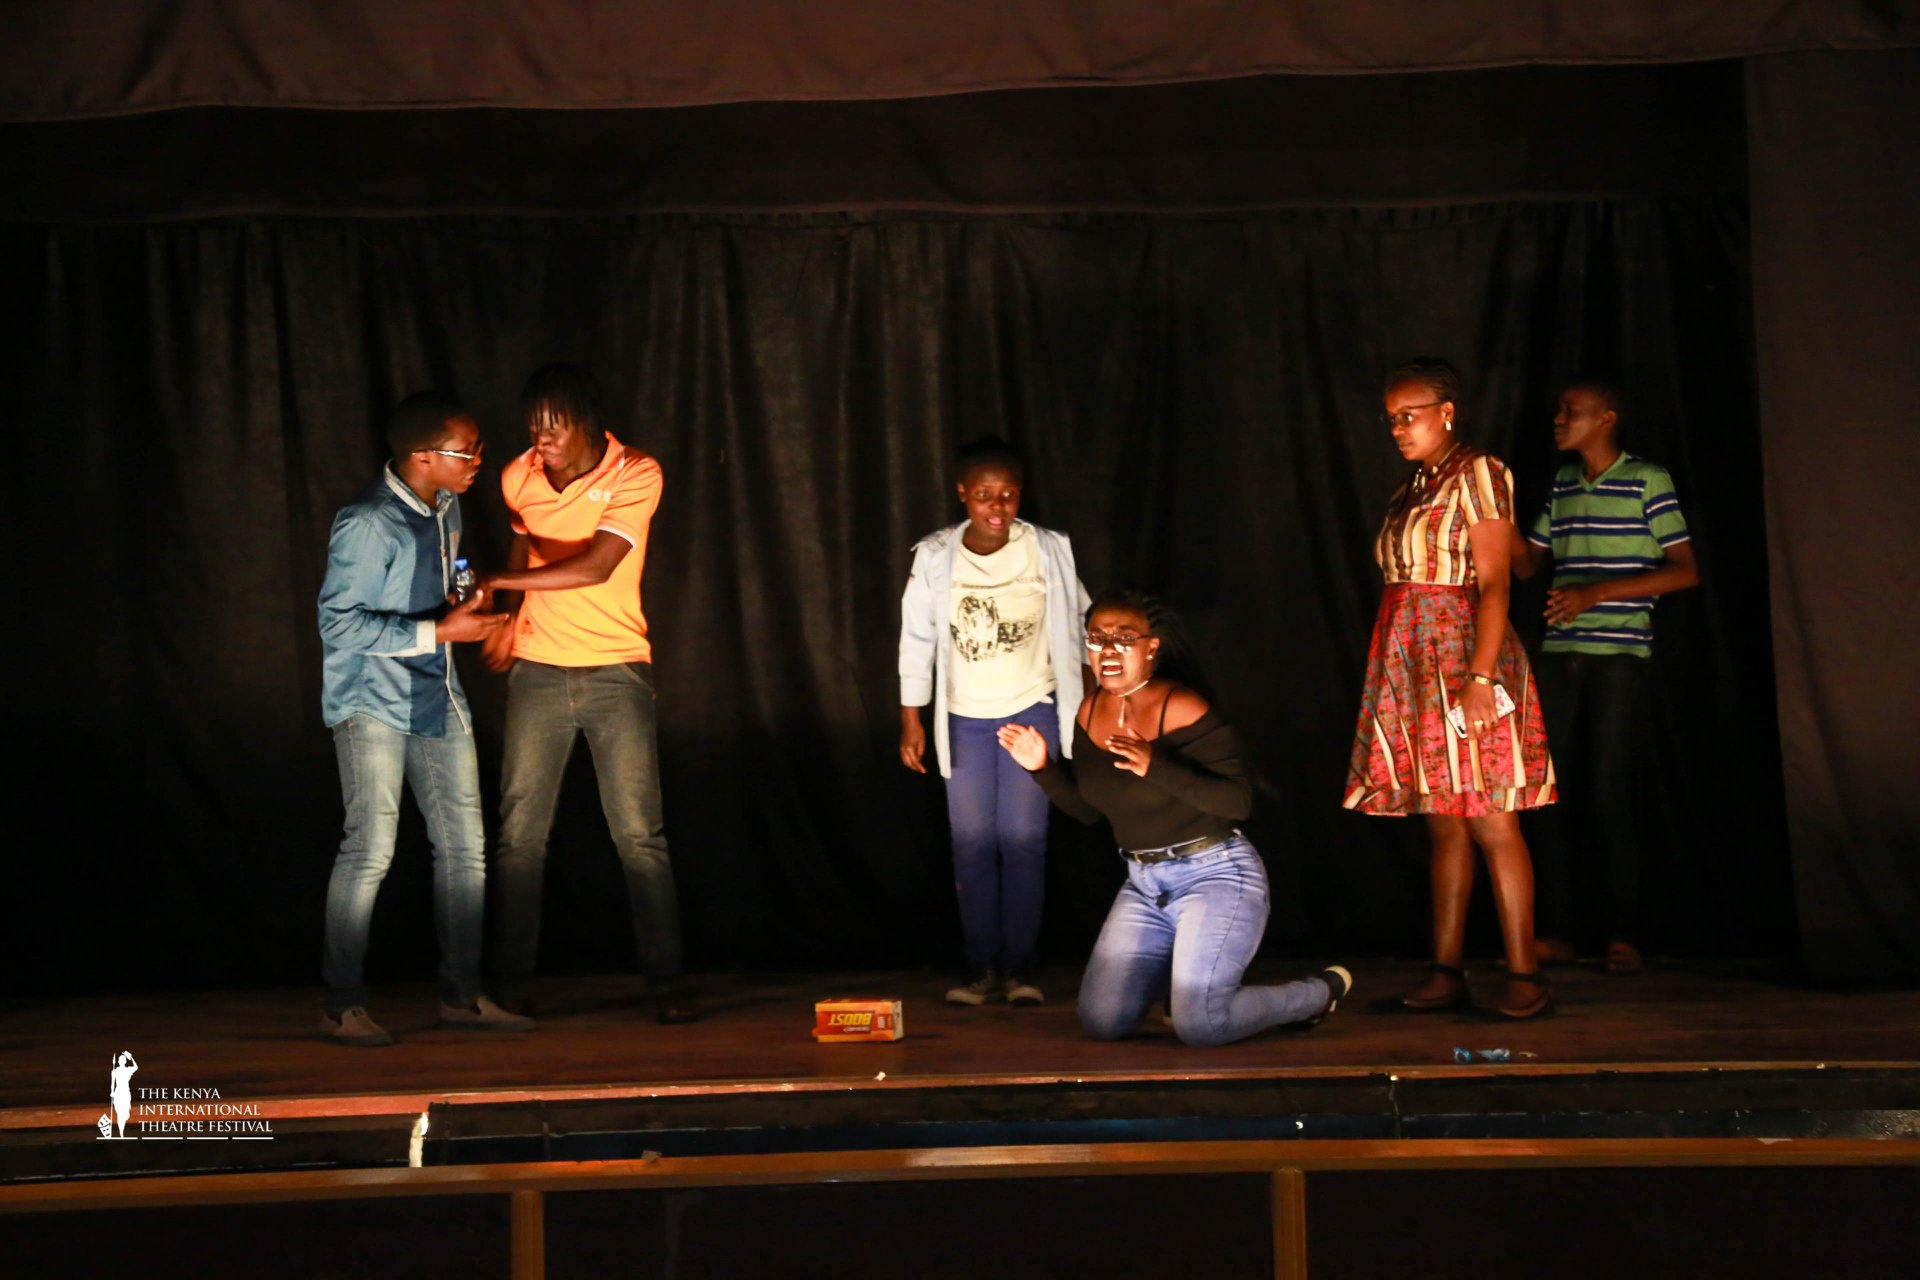 A past performance at the Nakuru Players Theatre. KTA jurists will assess performances across the country. (Photo: Kenya International Theatre Fest)